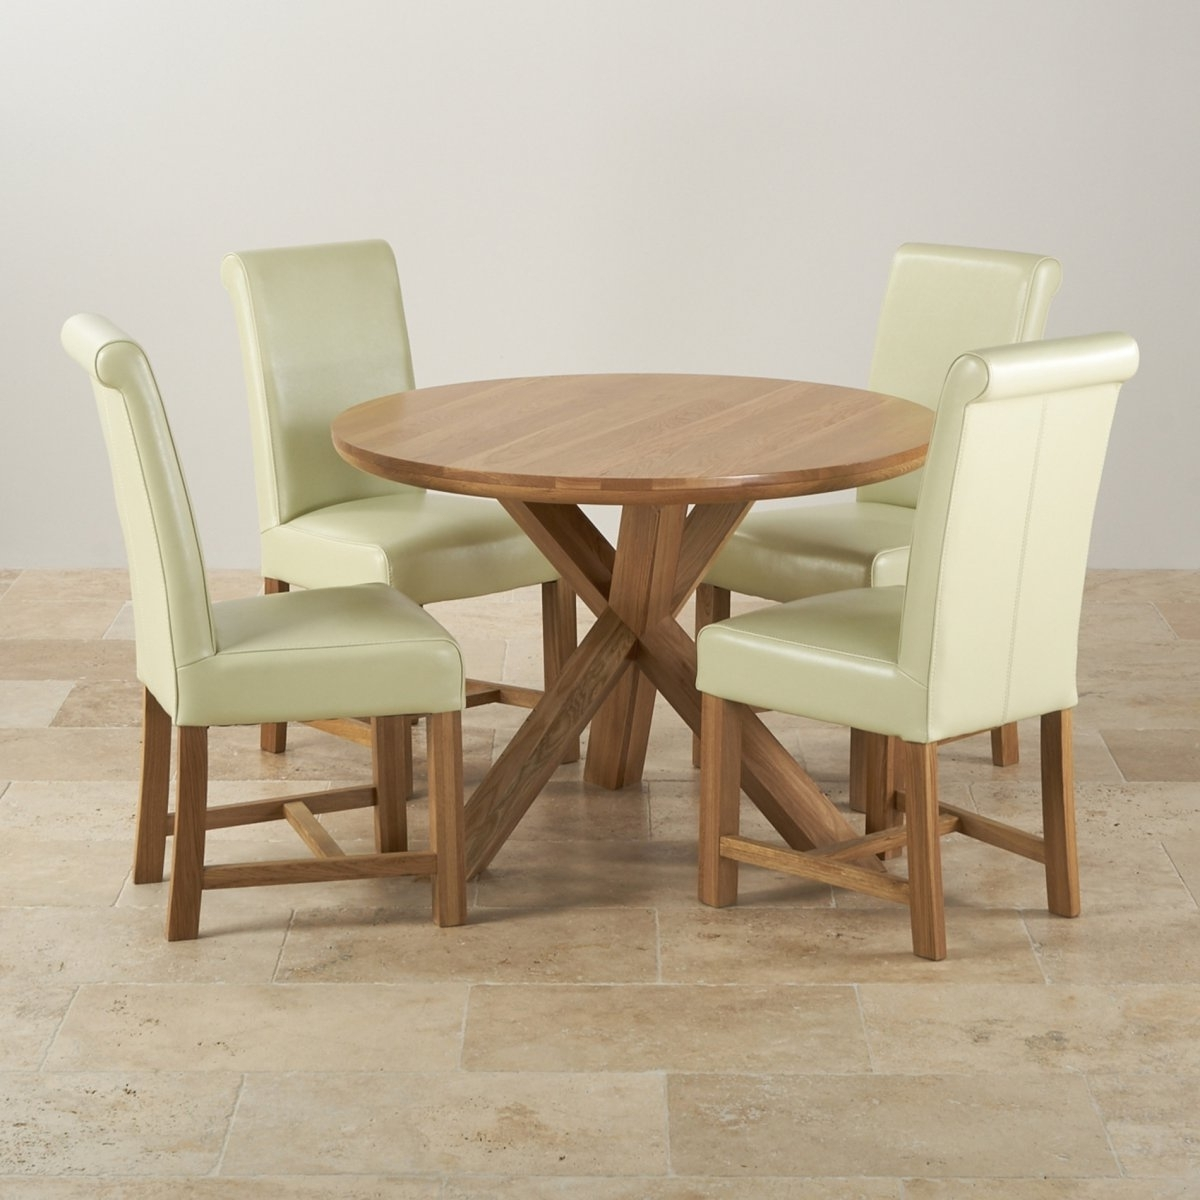 Oak Dining Tables And Leather Chairs Pertaining To Best And Newest Natural Oak Round Dining Set Table 4 Cream Leather Chairs High End (View 16 of 25)